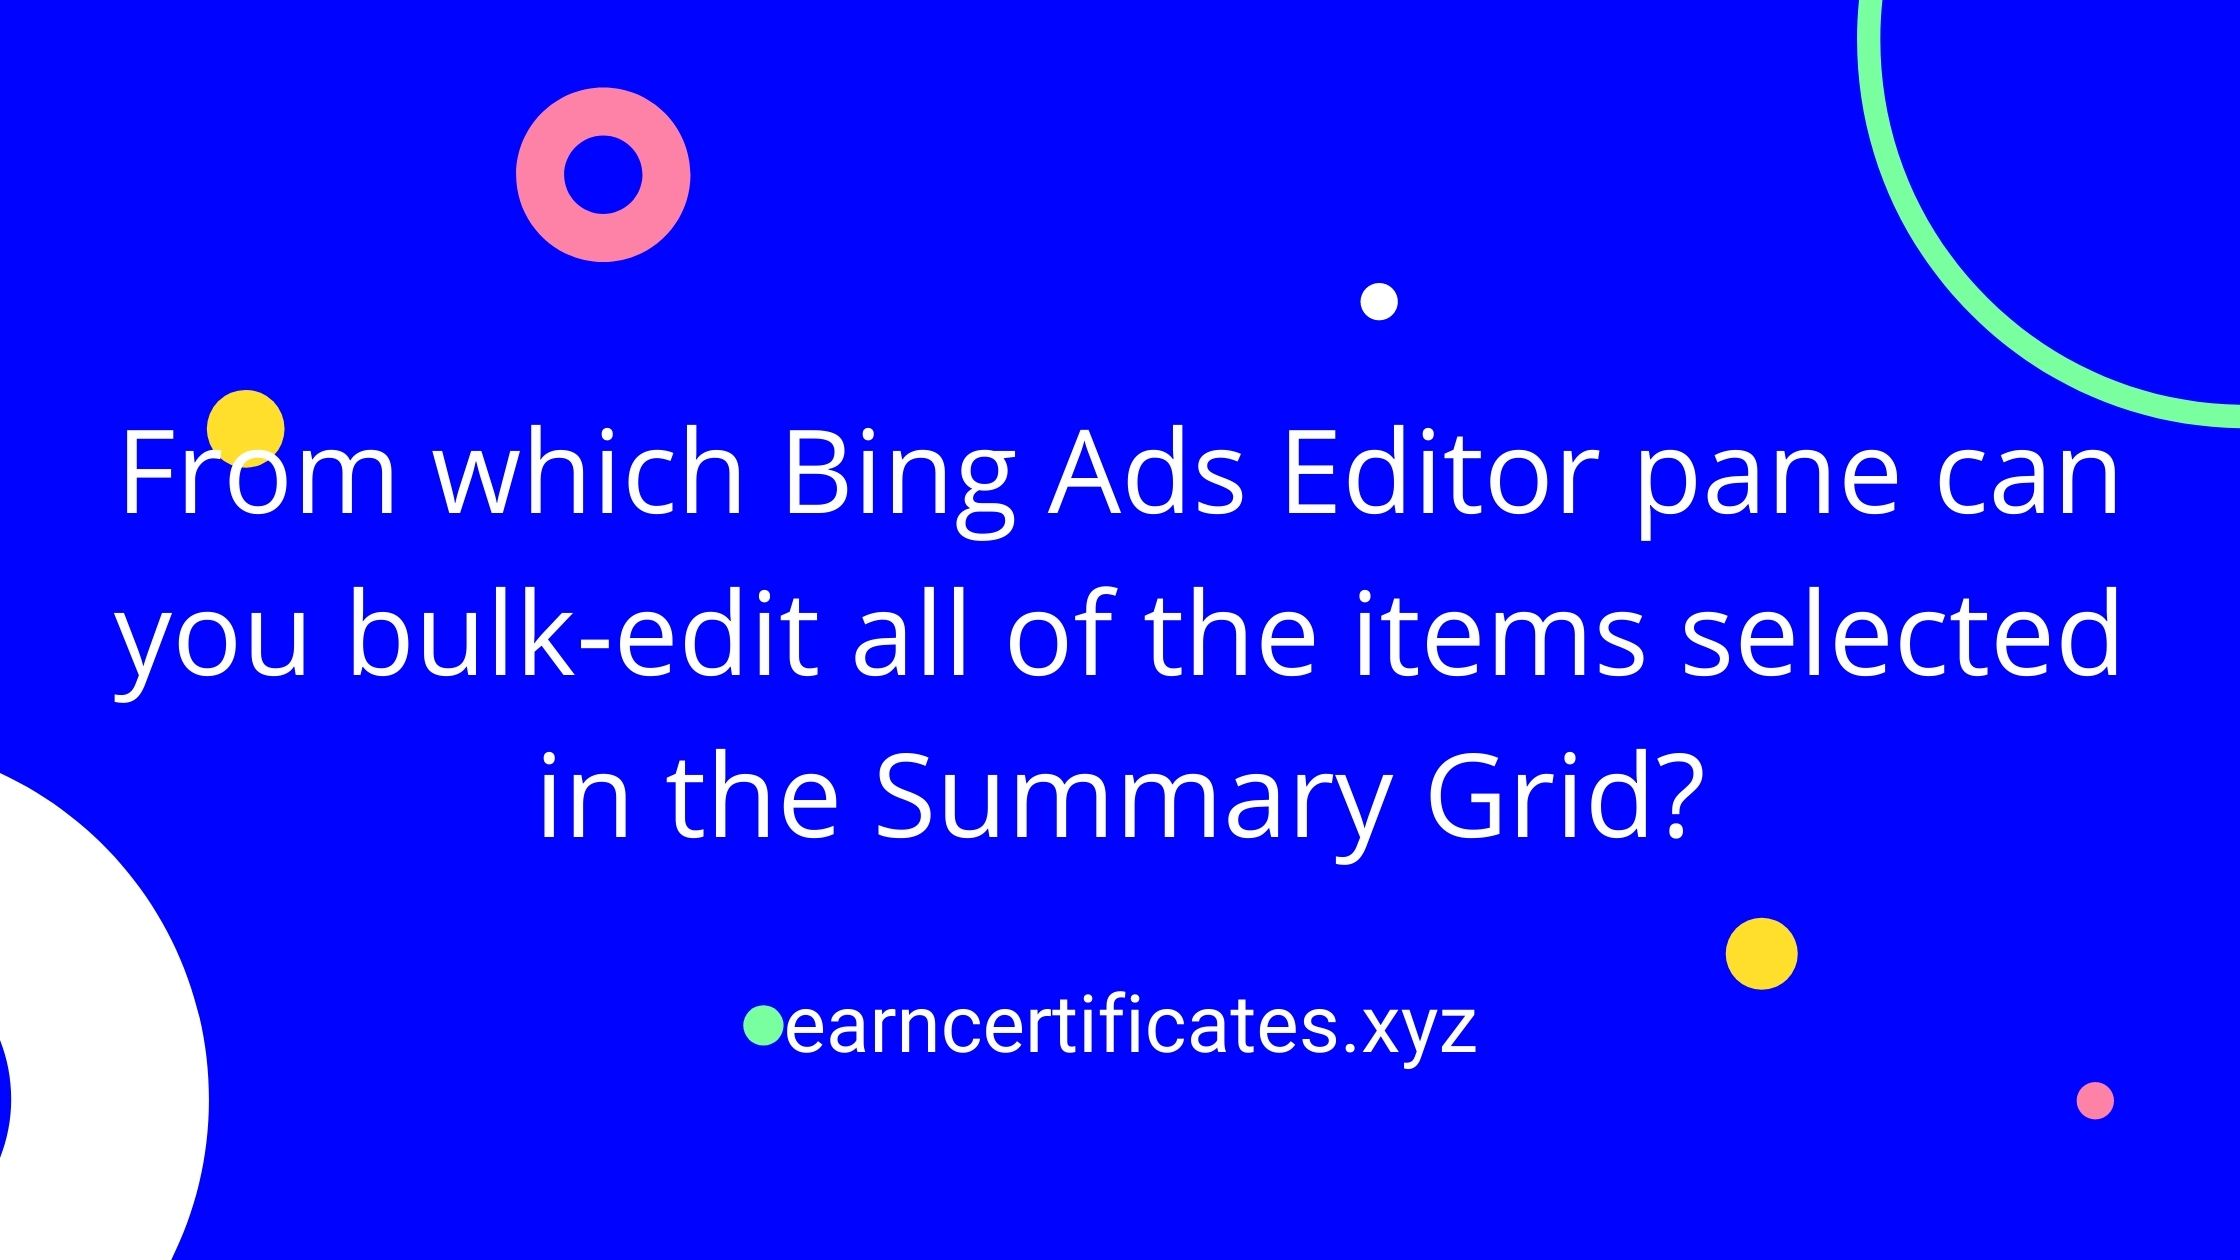 From which Bing Ads Editor pane can you bulk-edit all of the items selected in the Summary Grid?